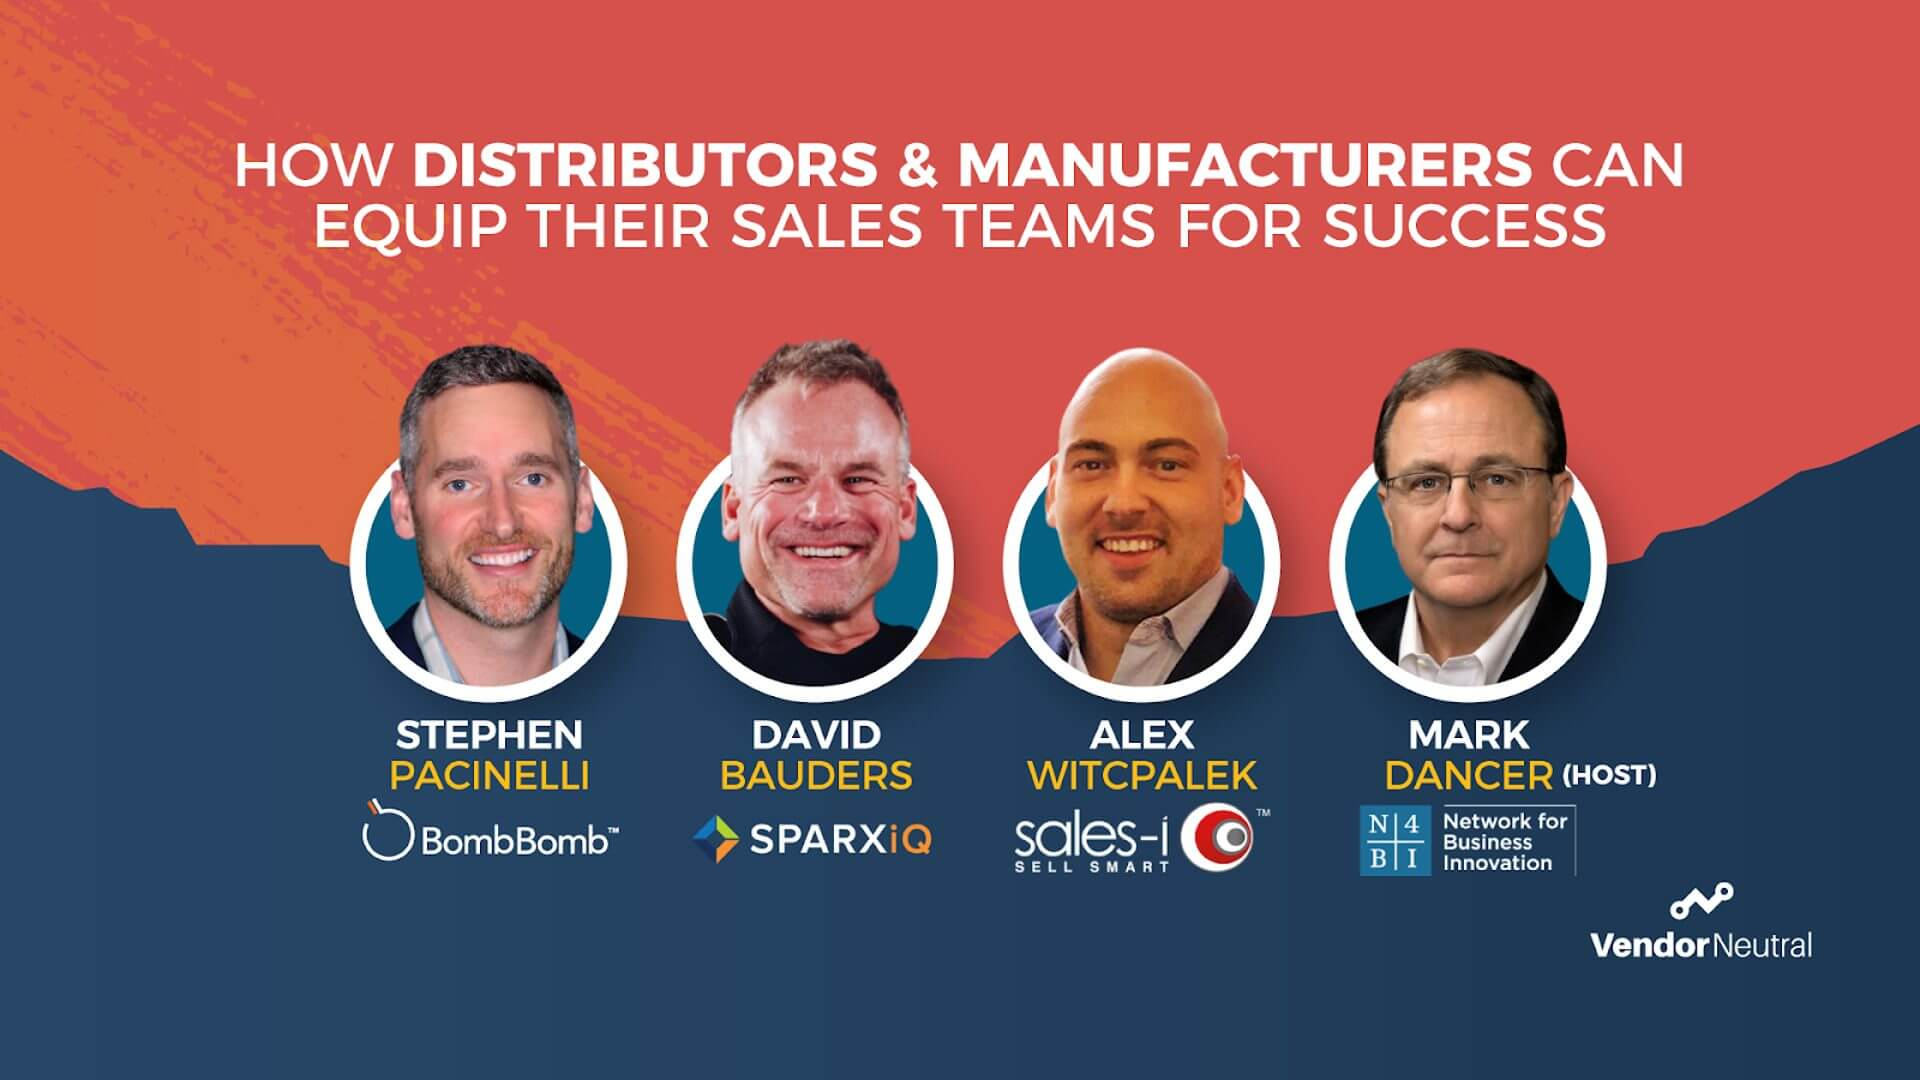 How Distributors & Manufacturers Can Equip Their Sales Teams for Success